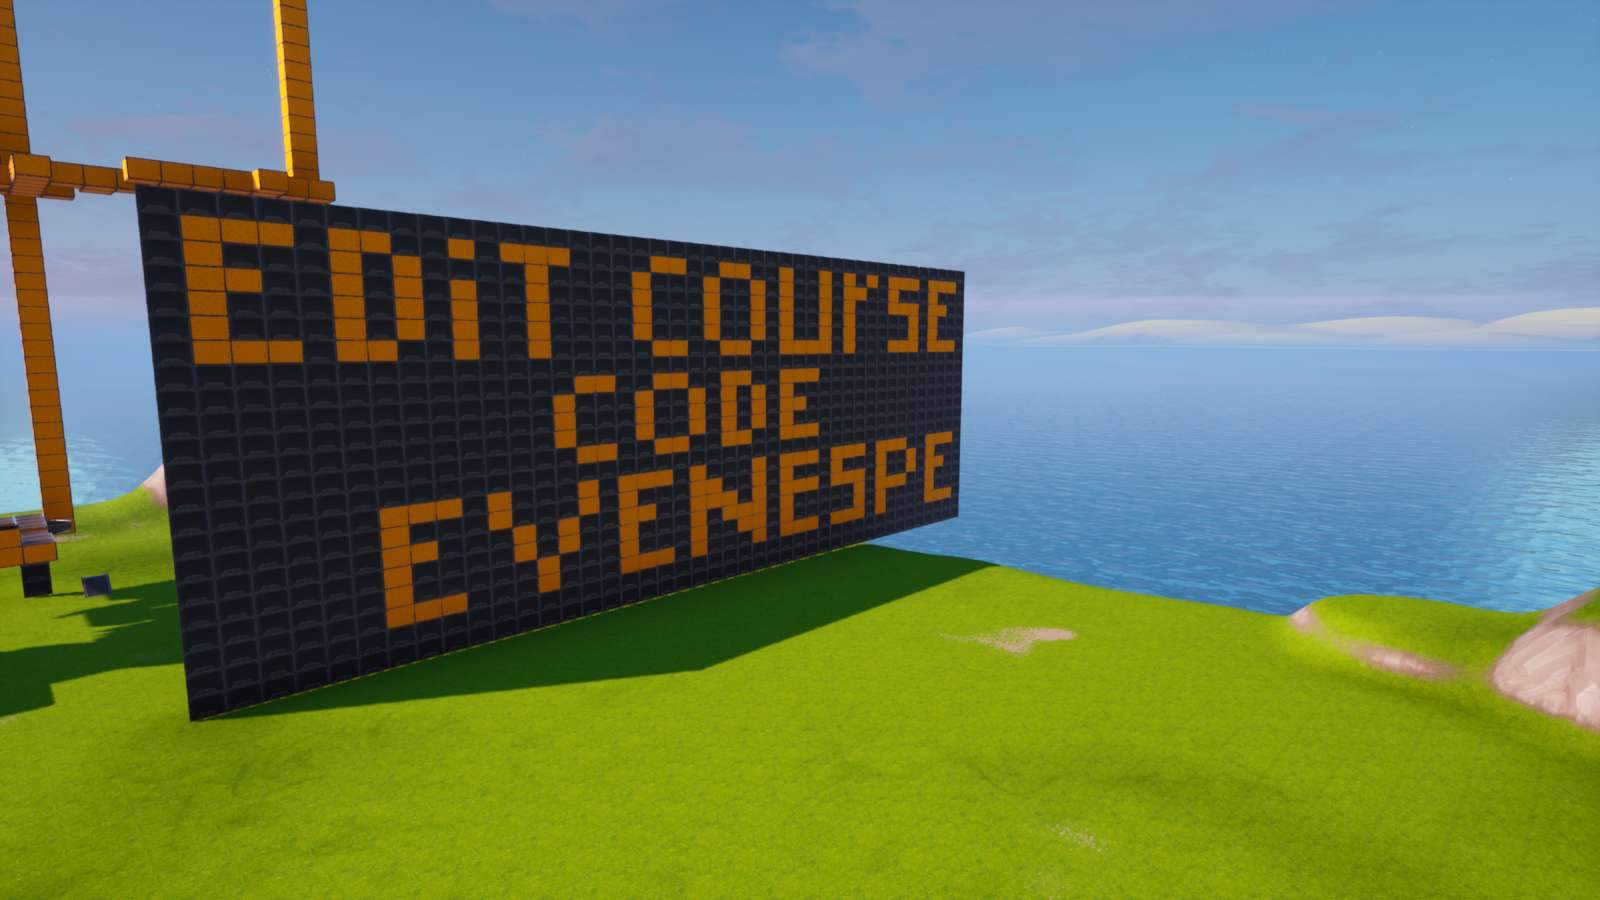 EDIT COURSE BY EVENESPE